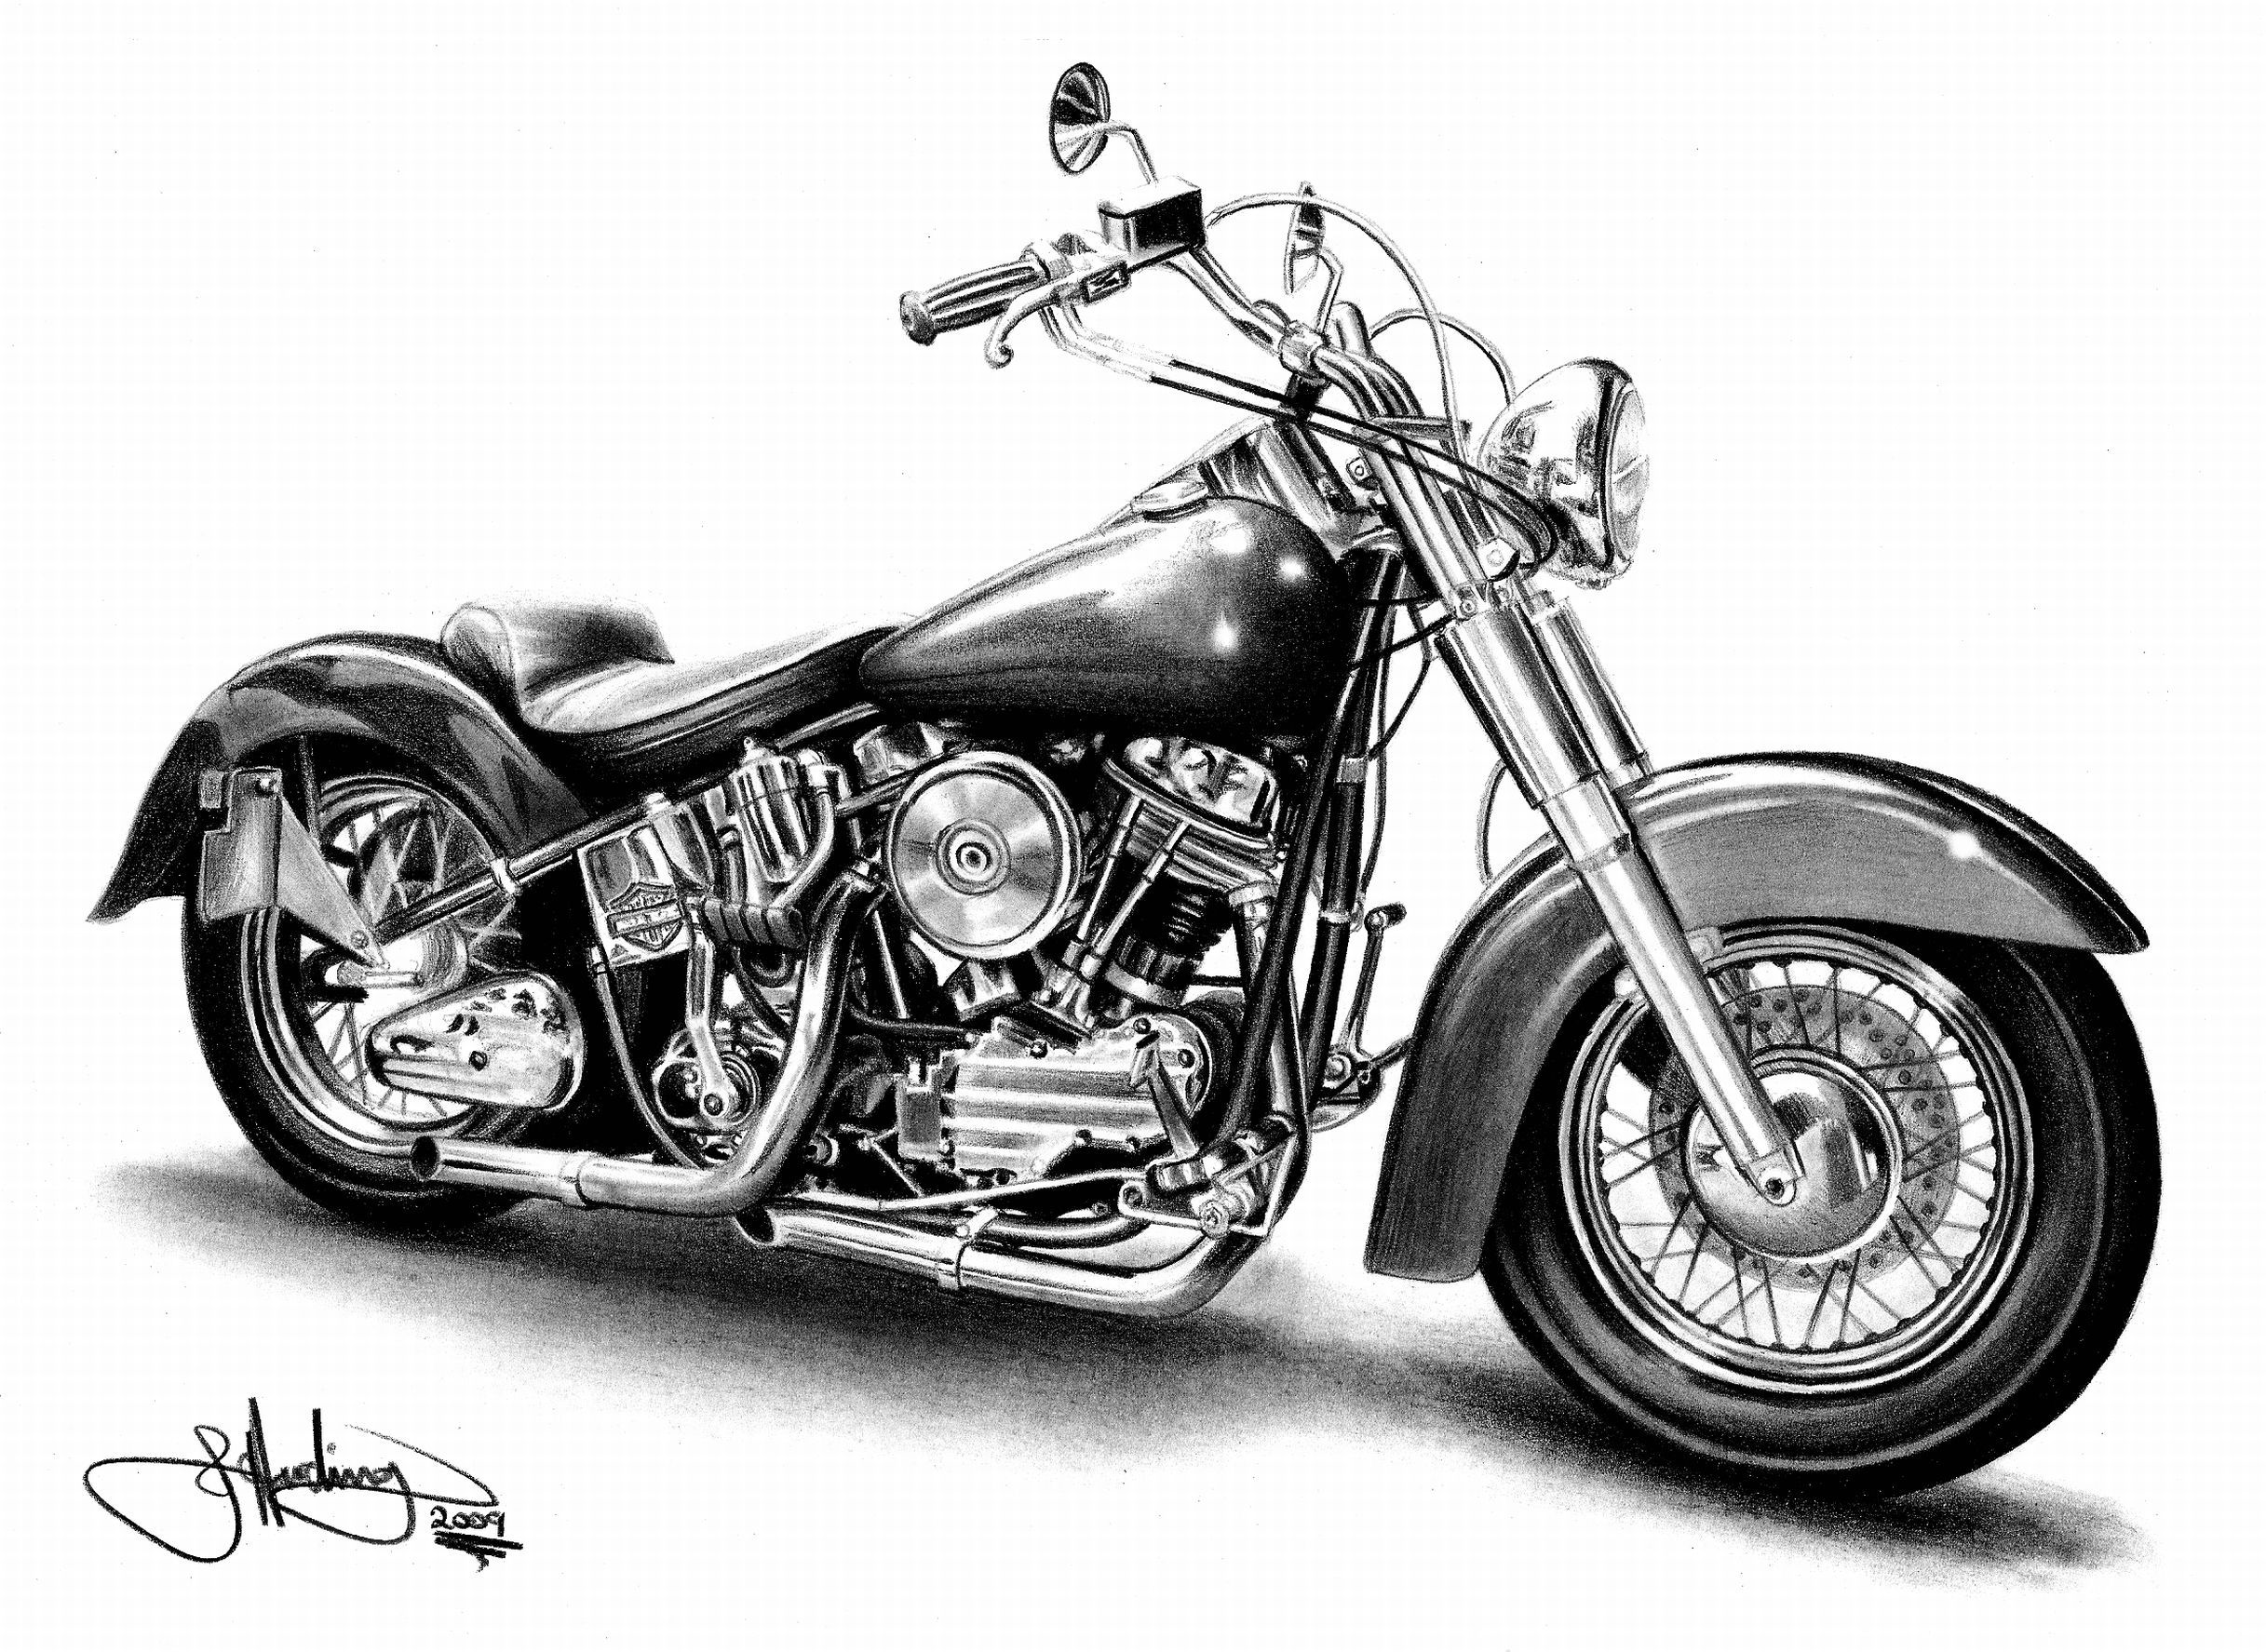 Harley davidson motorcycle clipart cliparts and others art.